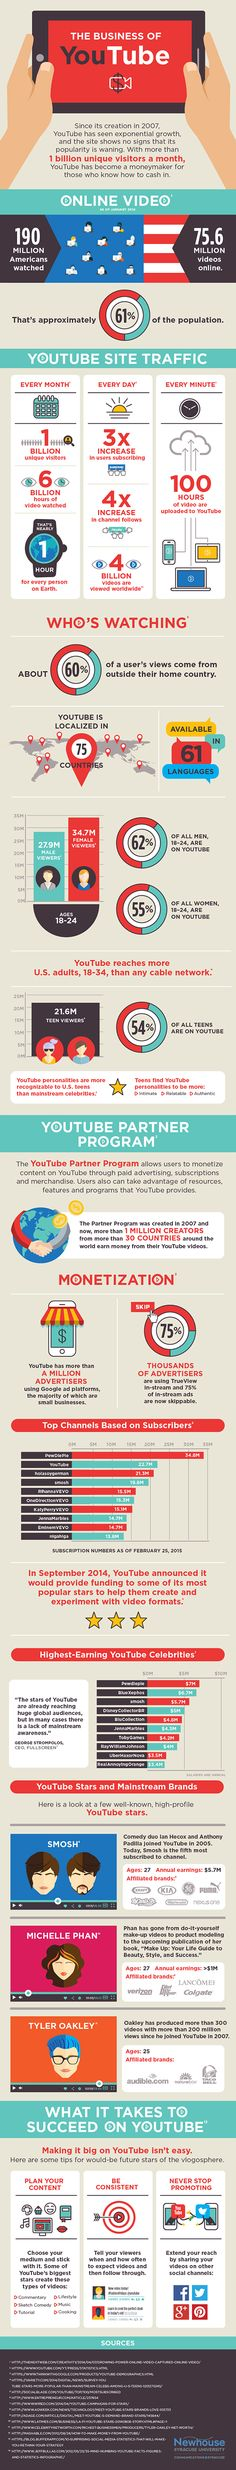 30+ Fascinating YouTube Facts That May Surprise You - #infographic #socialmedia